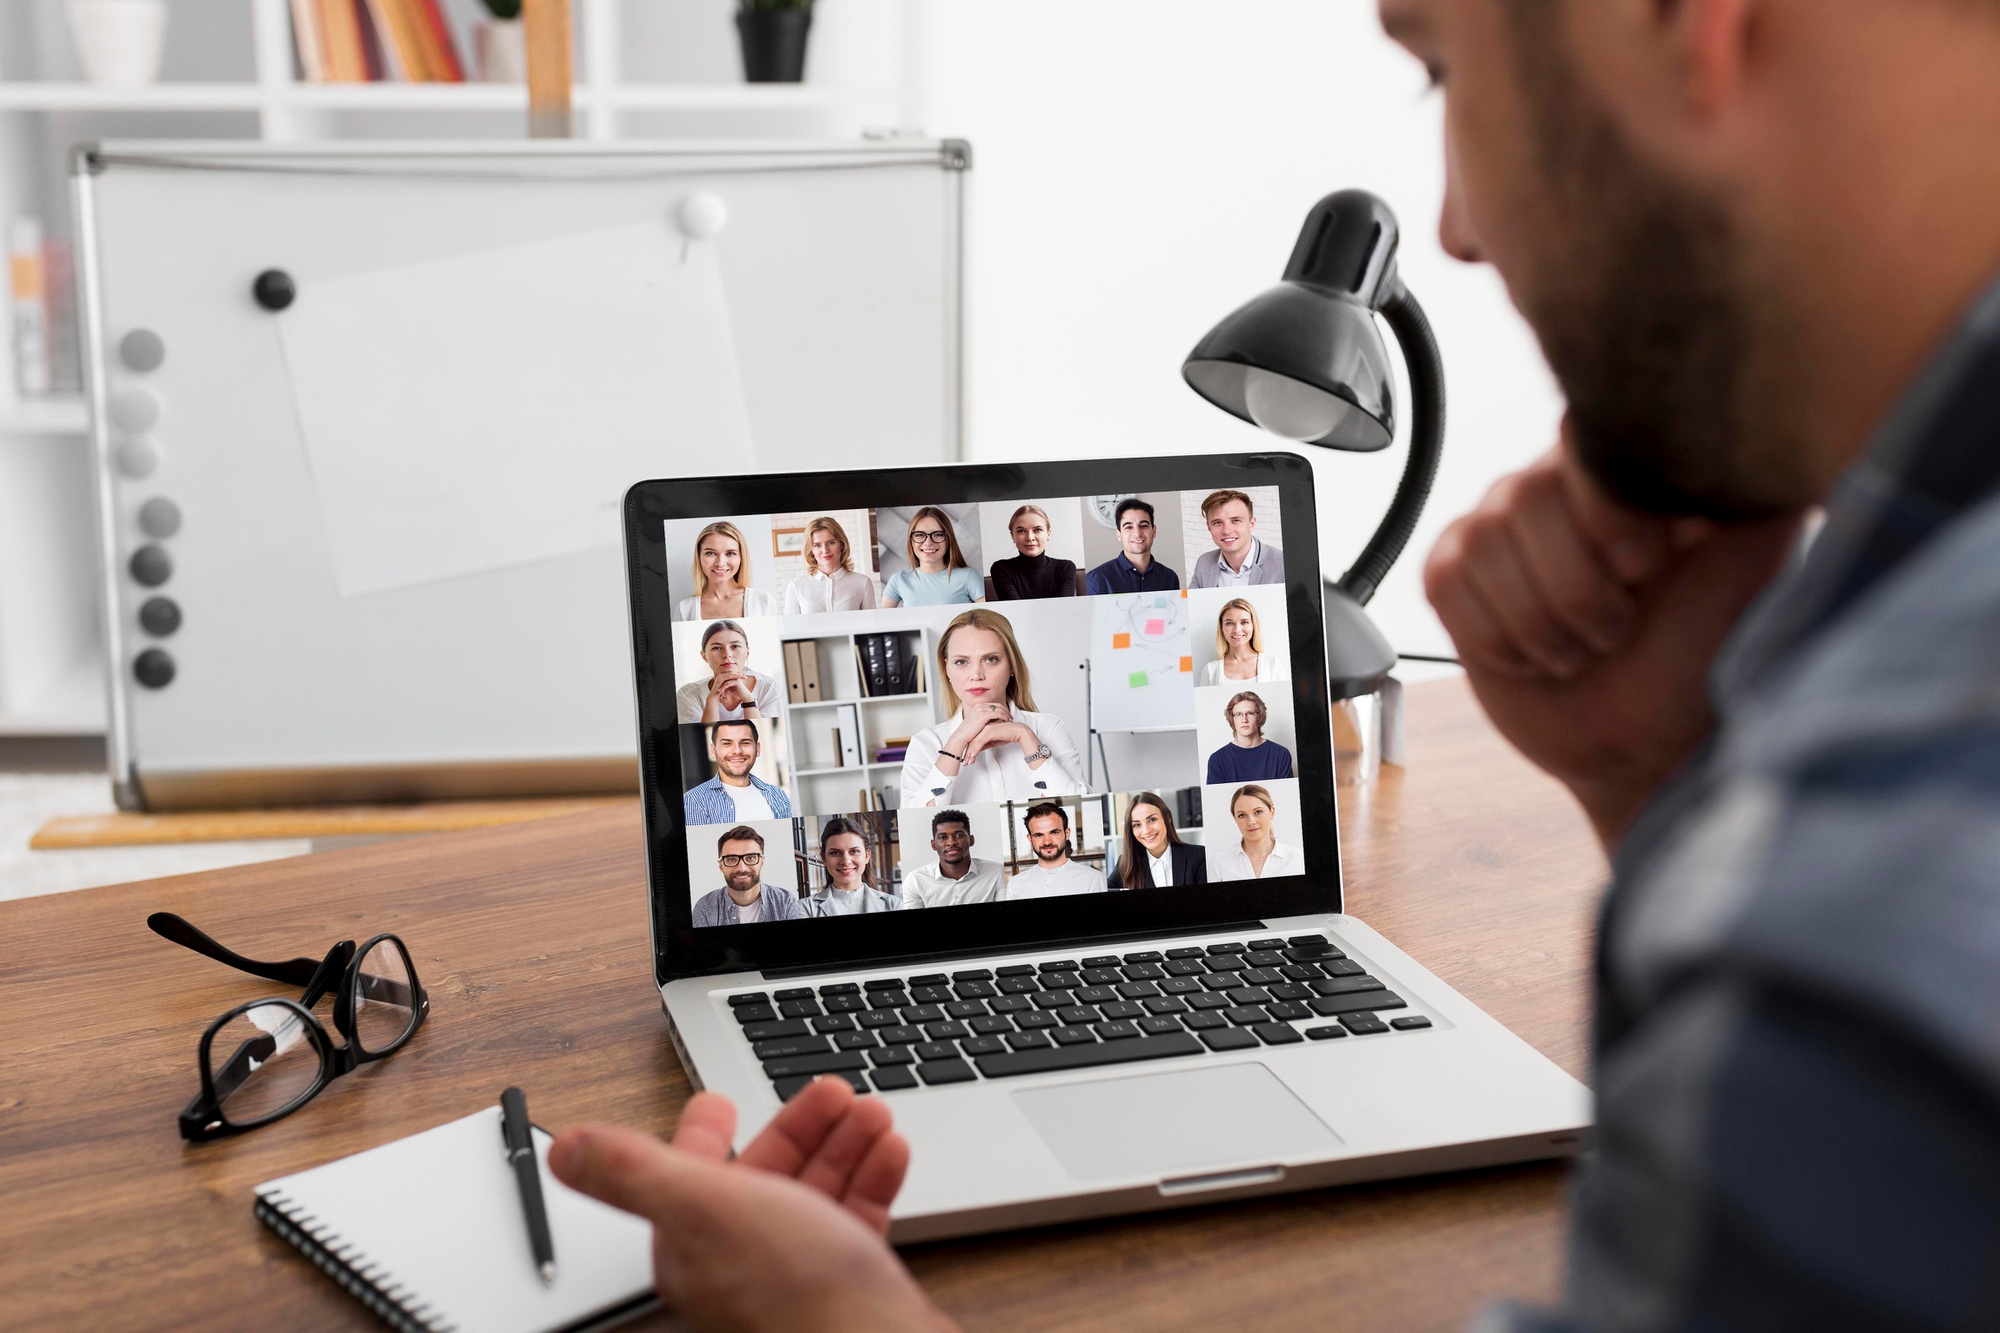 Conducting your online meeting